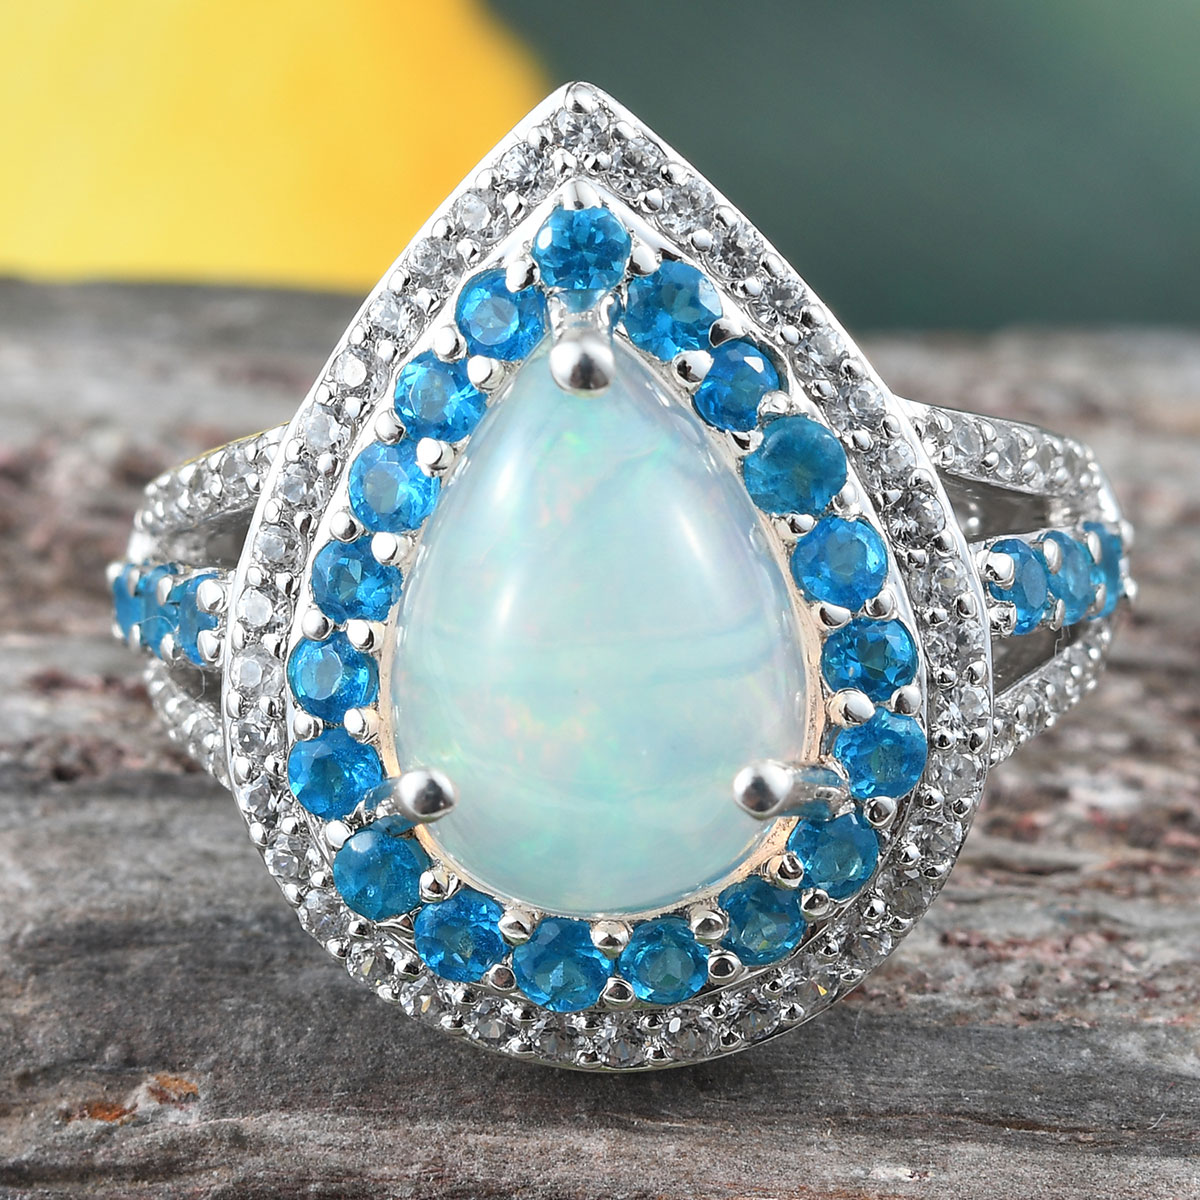 925-Sterling-Silver-Opal-Neon-Apatite-Halo-Ring-Jewelry-for-Women-Ct-4-1 thumbnail 2